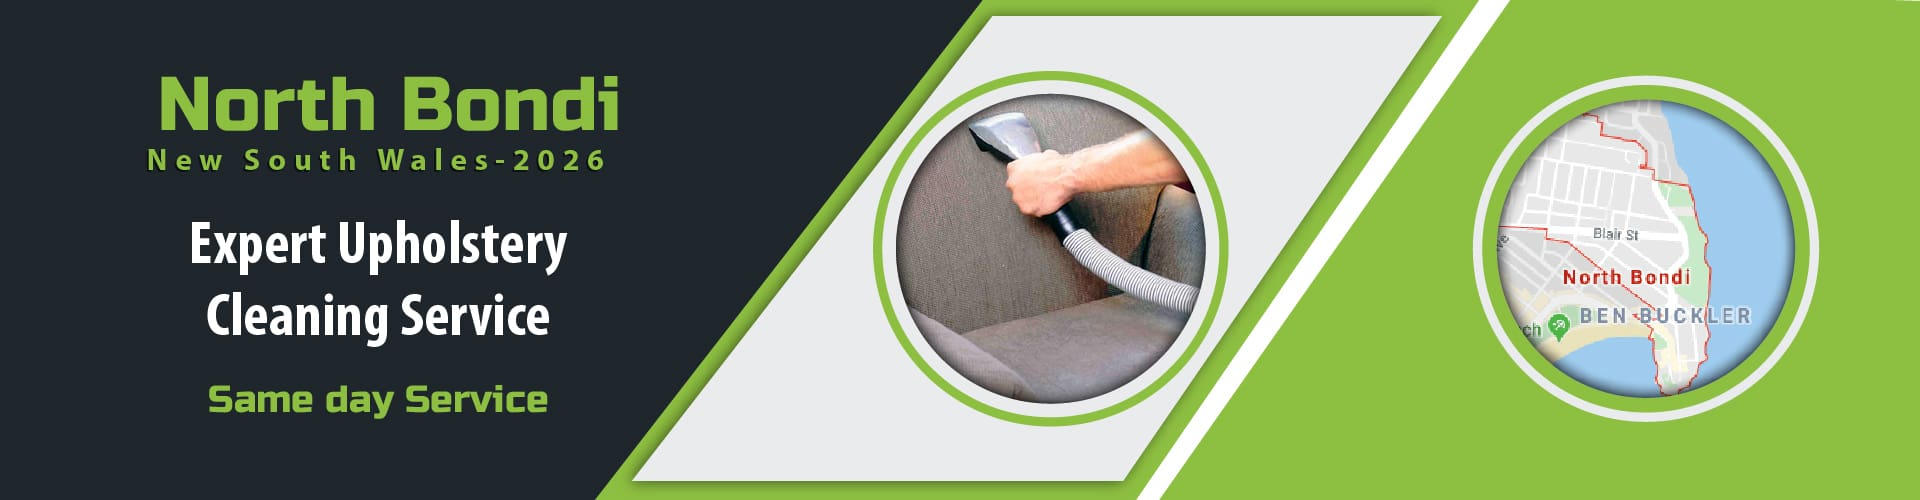 Upholstery Cleaning North Bondi